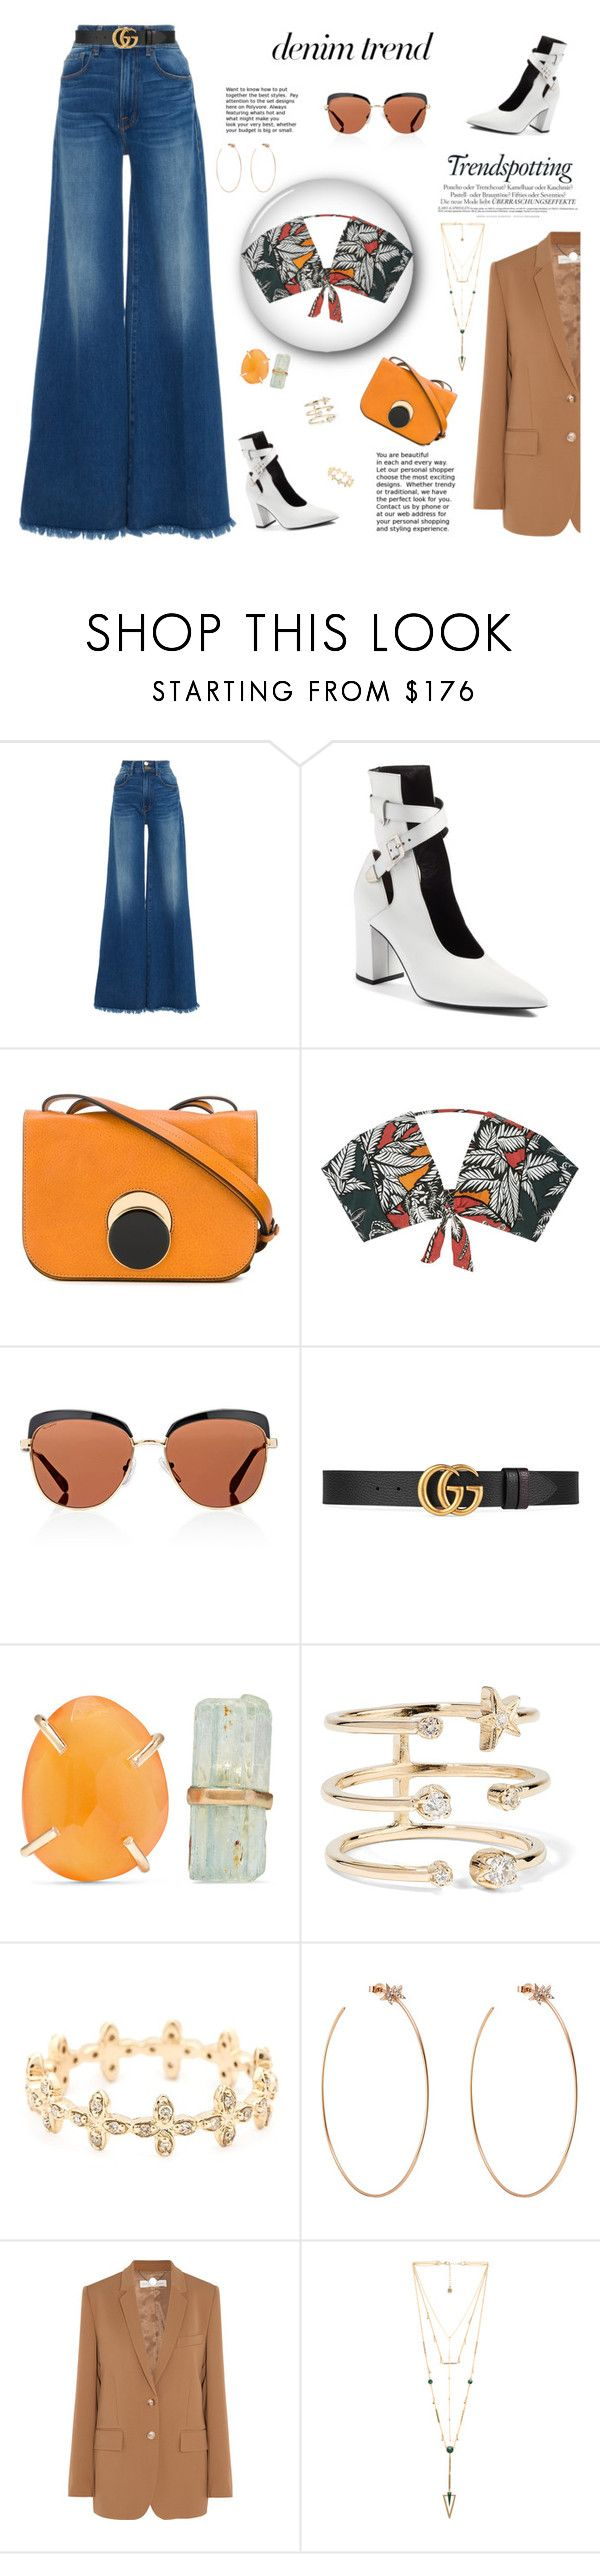 """Denim Trend: Wide Leg Denim"" by fashionbrownies ❤ liked on Polyvore featuring Frame, Robert Clergerie, Marni, Água de Coco, Prada, Gucci, Melissa Joy Manning, Andrea Fohrman, Mathilde Danglade and Diane Kordas"